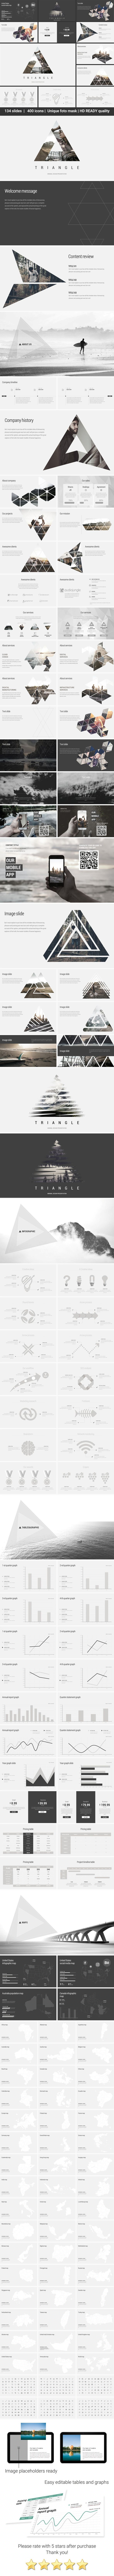 Triangle Minimal Powerpoint Template